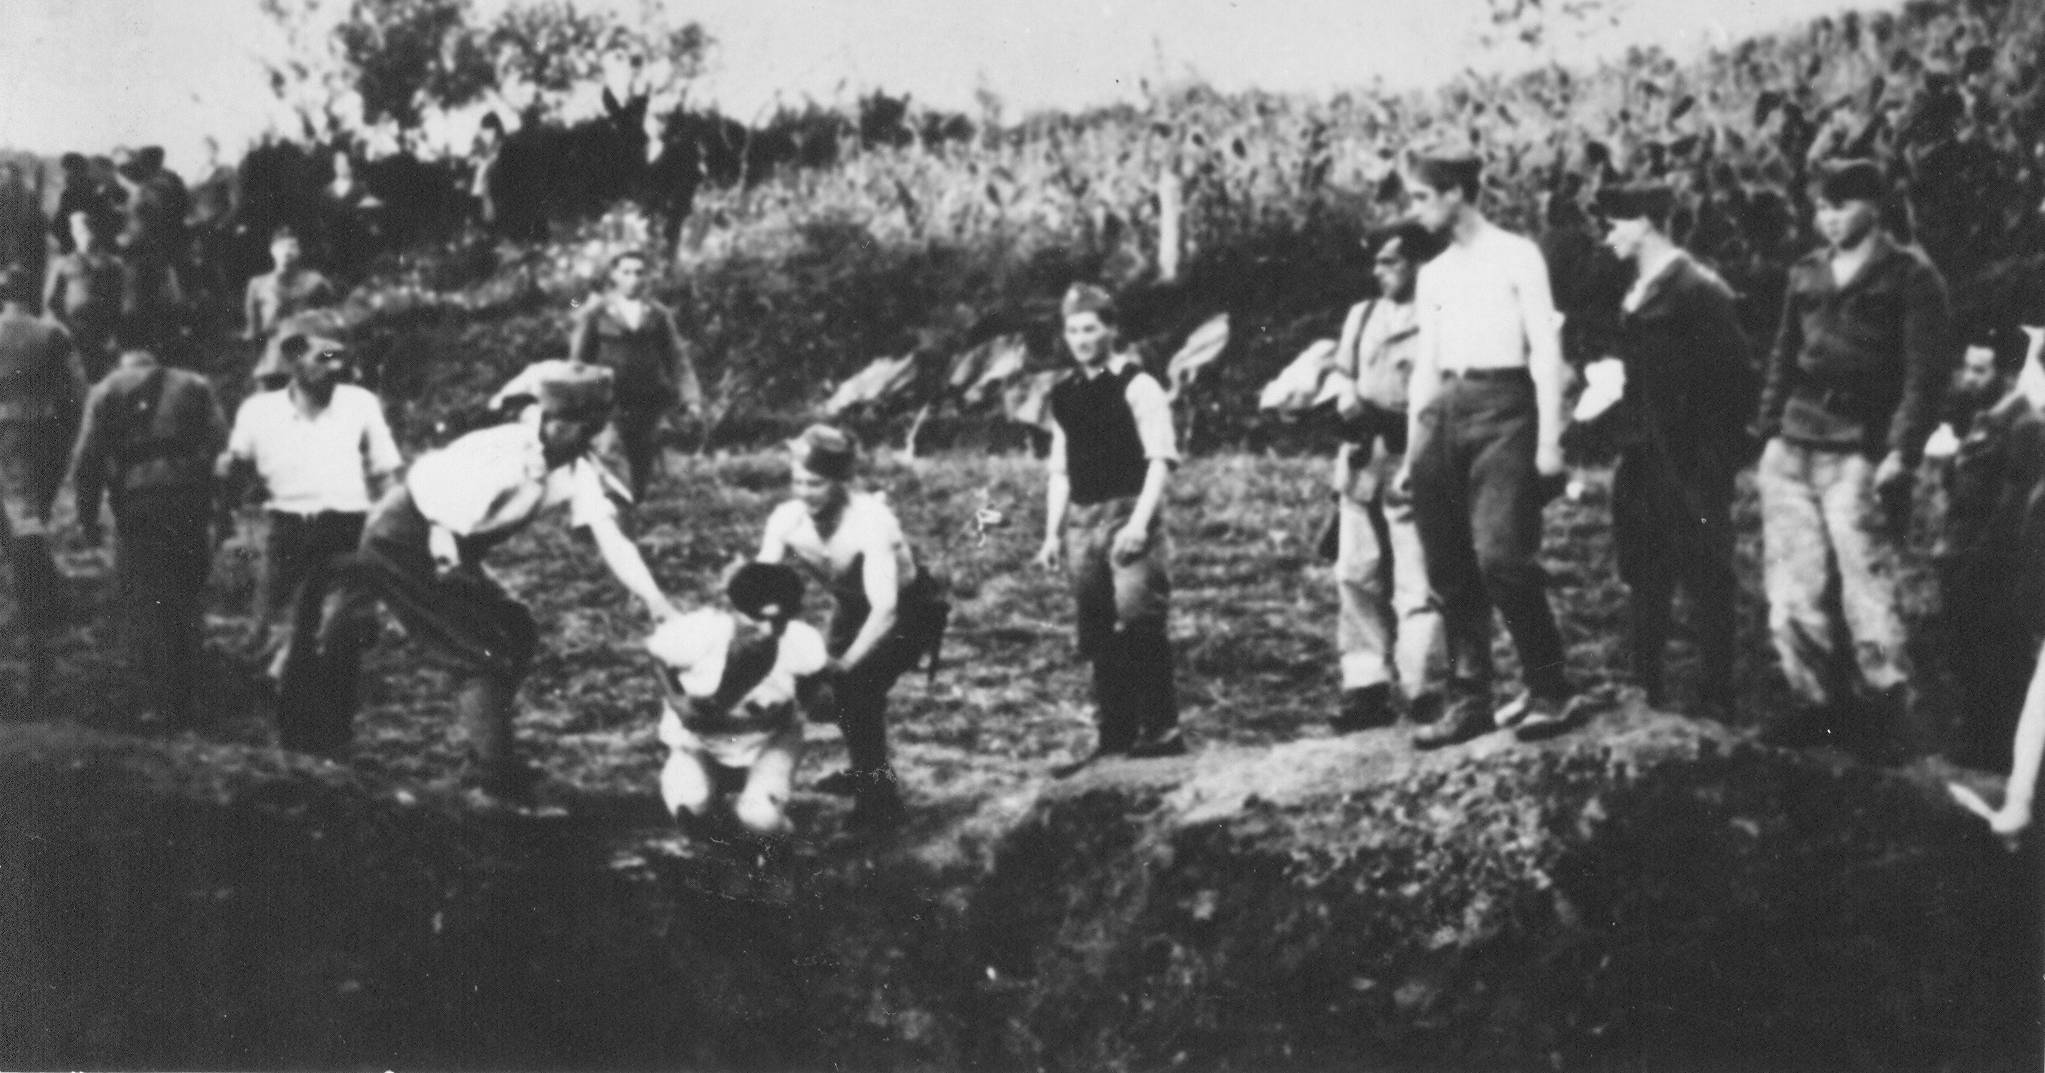 https://upload.wikimedia.org/wikipedia/commons/c/c5/Usta%C5%A1e_militia_execute_prisoners_near_the_Jasenovac_concentration_camp.jpg